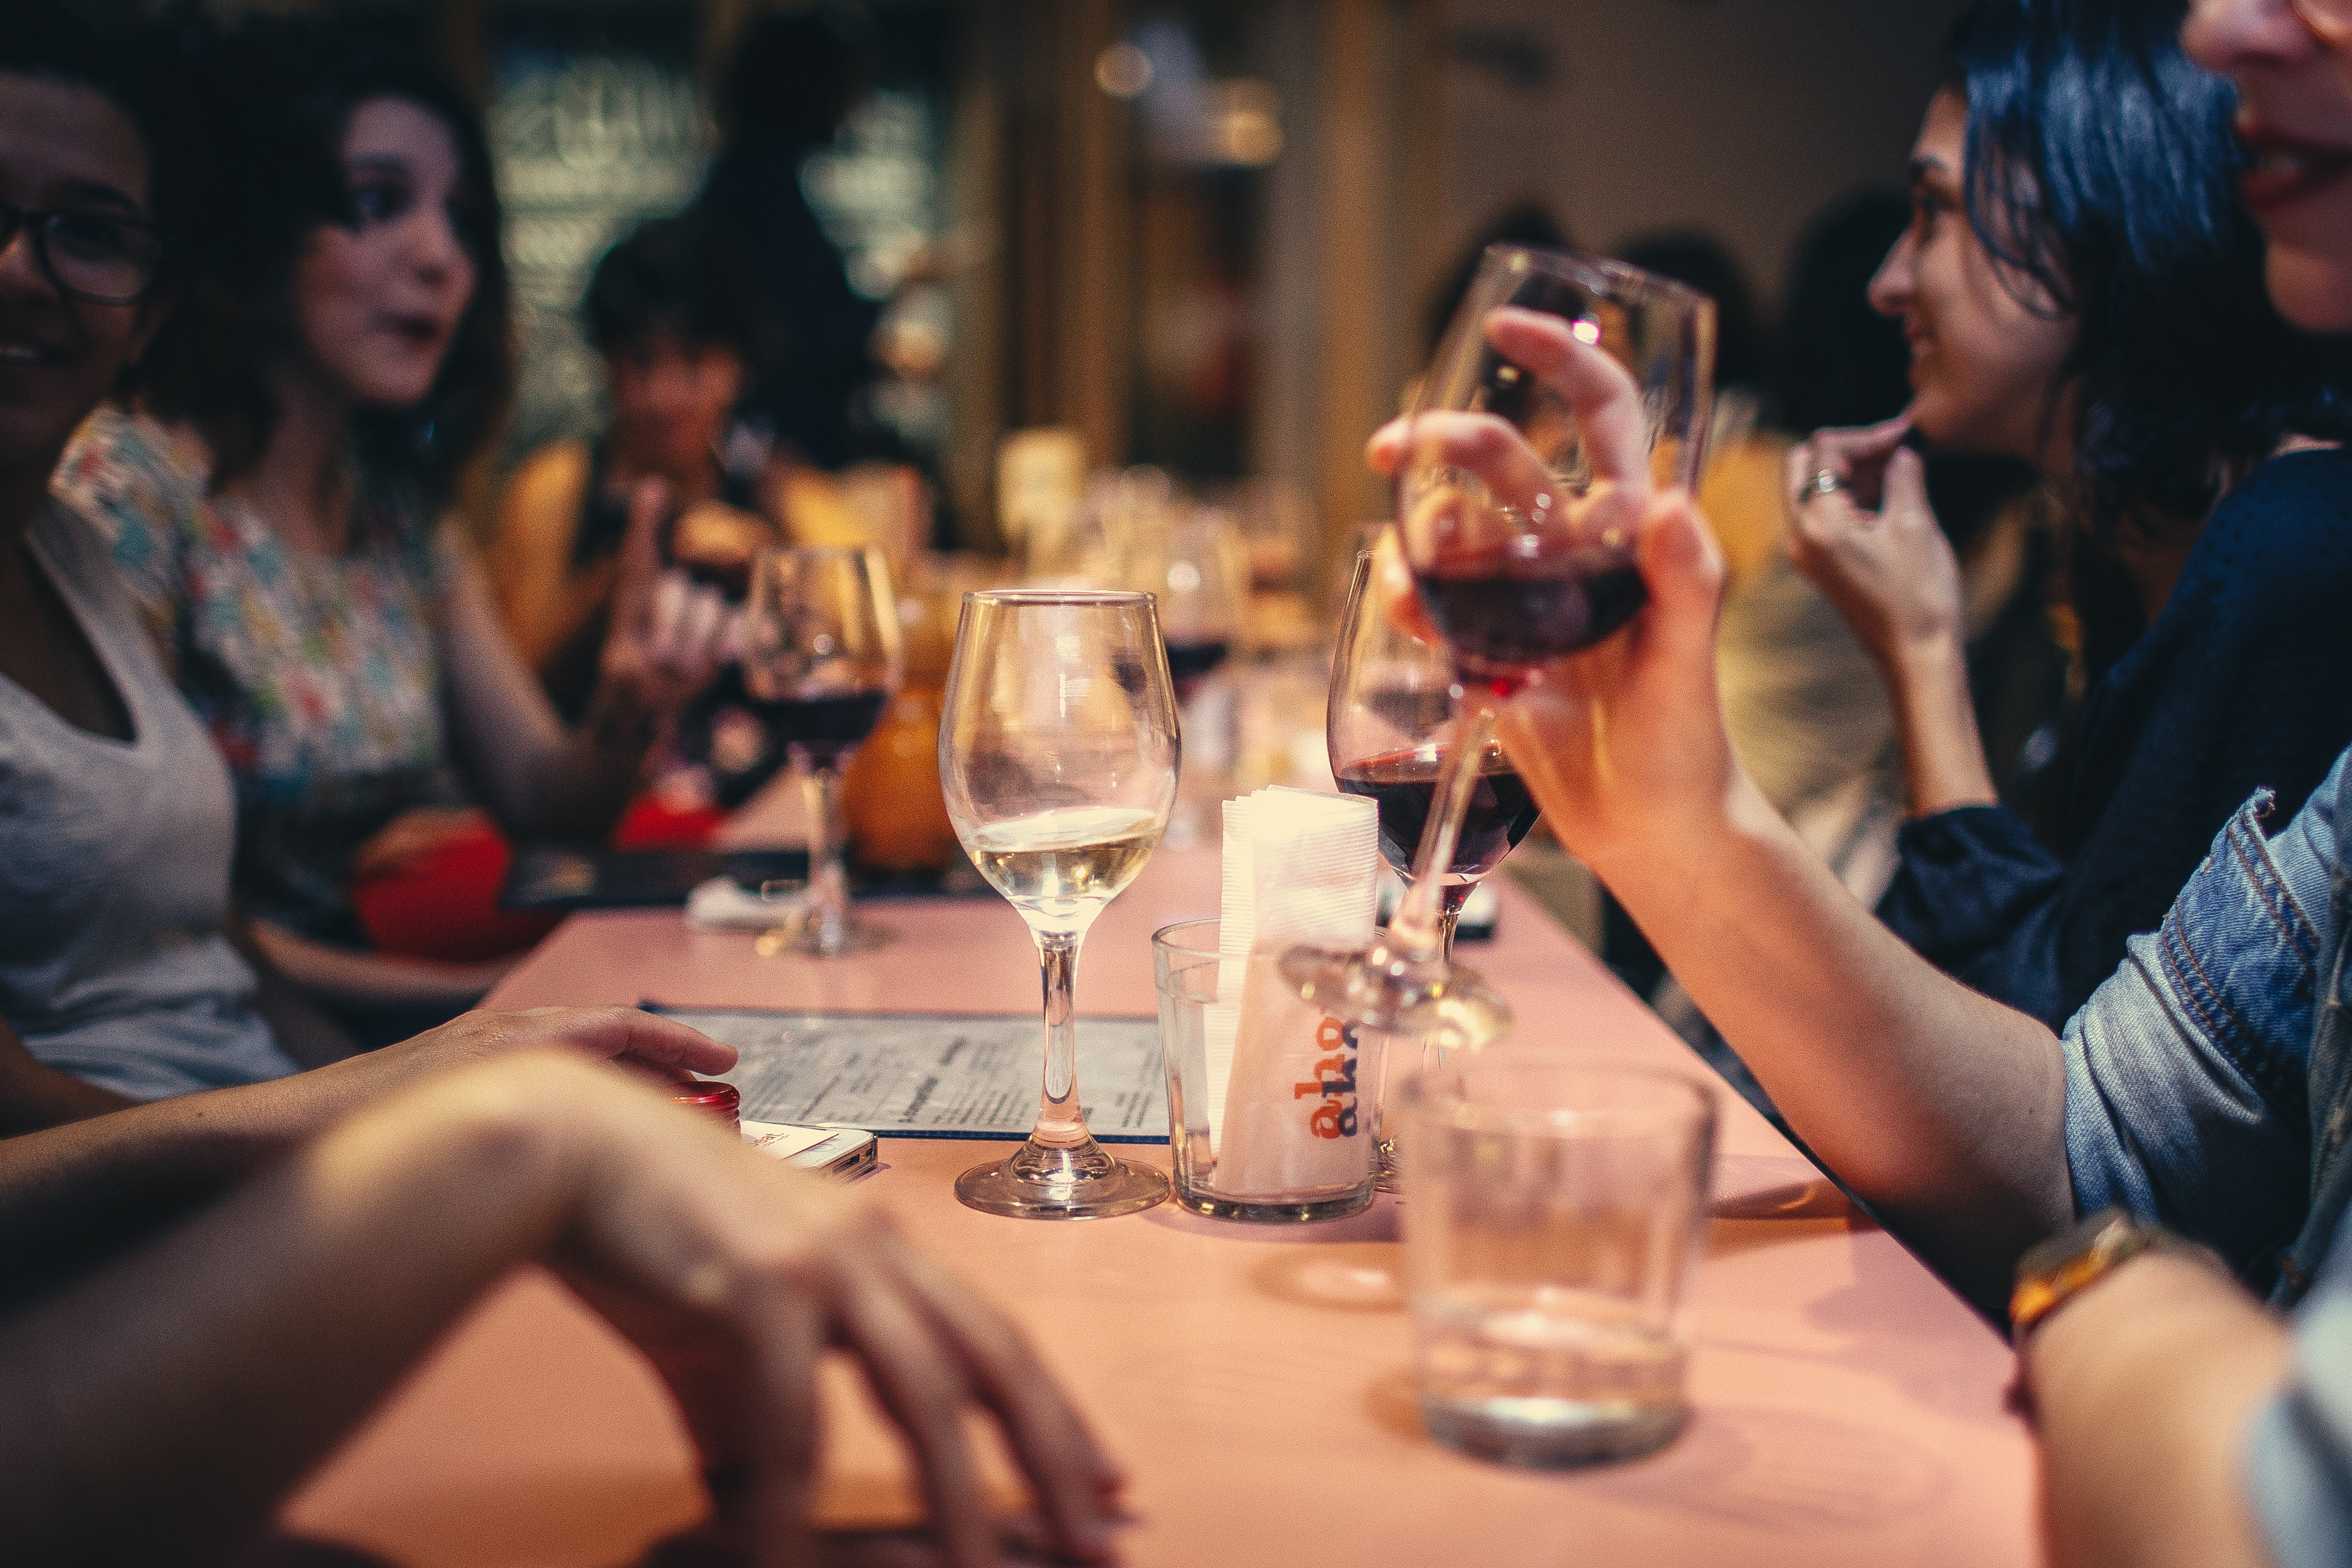 People Drinking Liquor and Talking on Dining Table Close-up Photo, Adult, Indoors, Wine glasses, Wine, HQ Photo